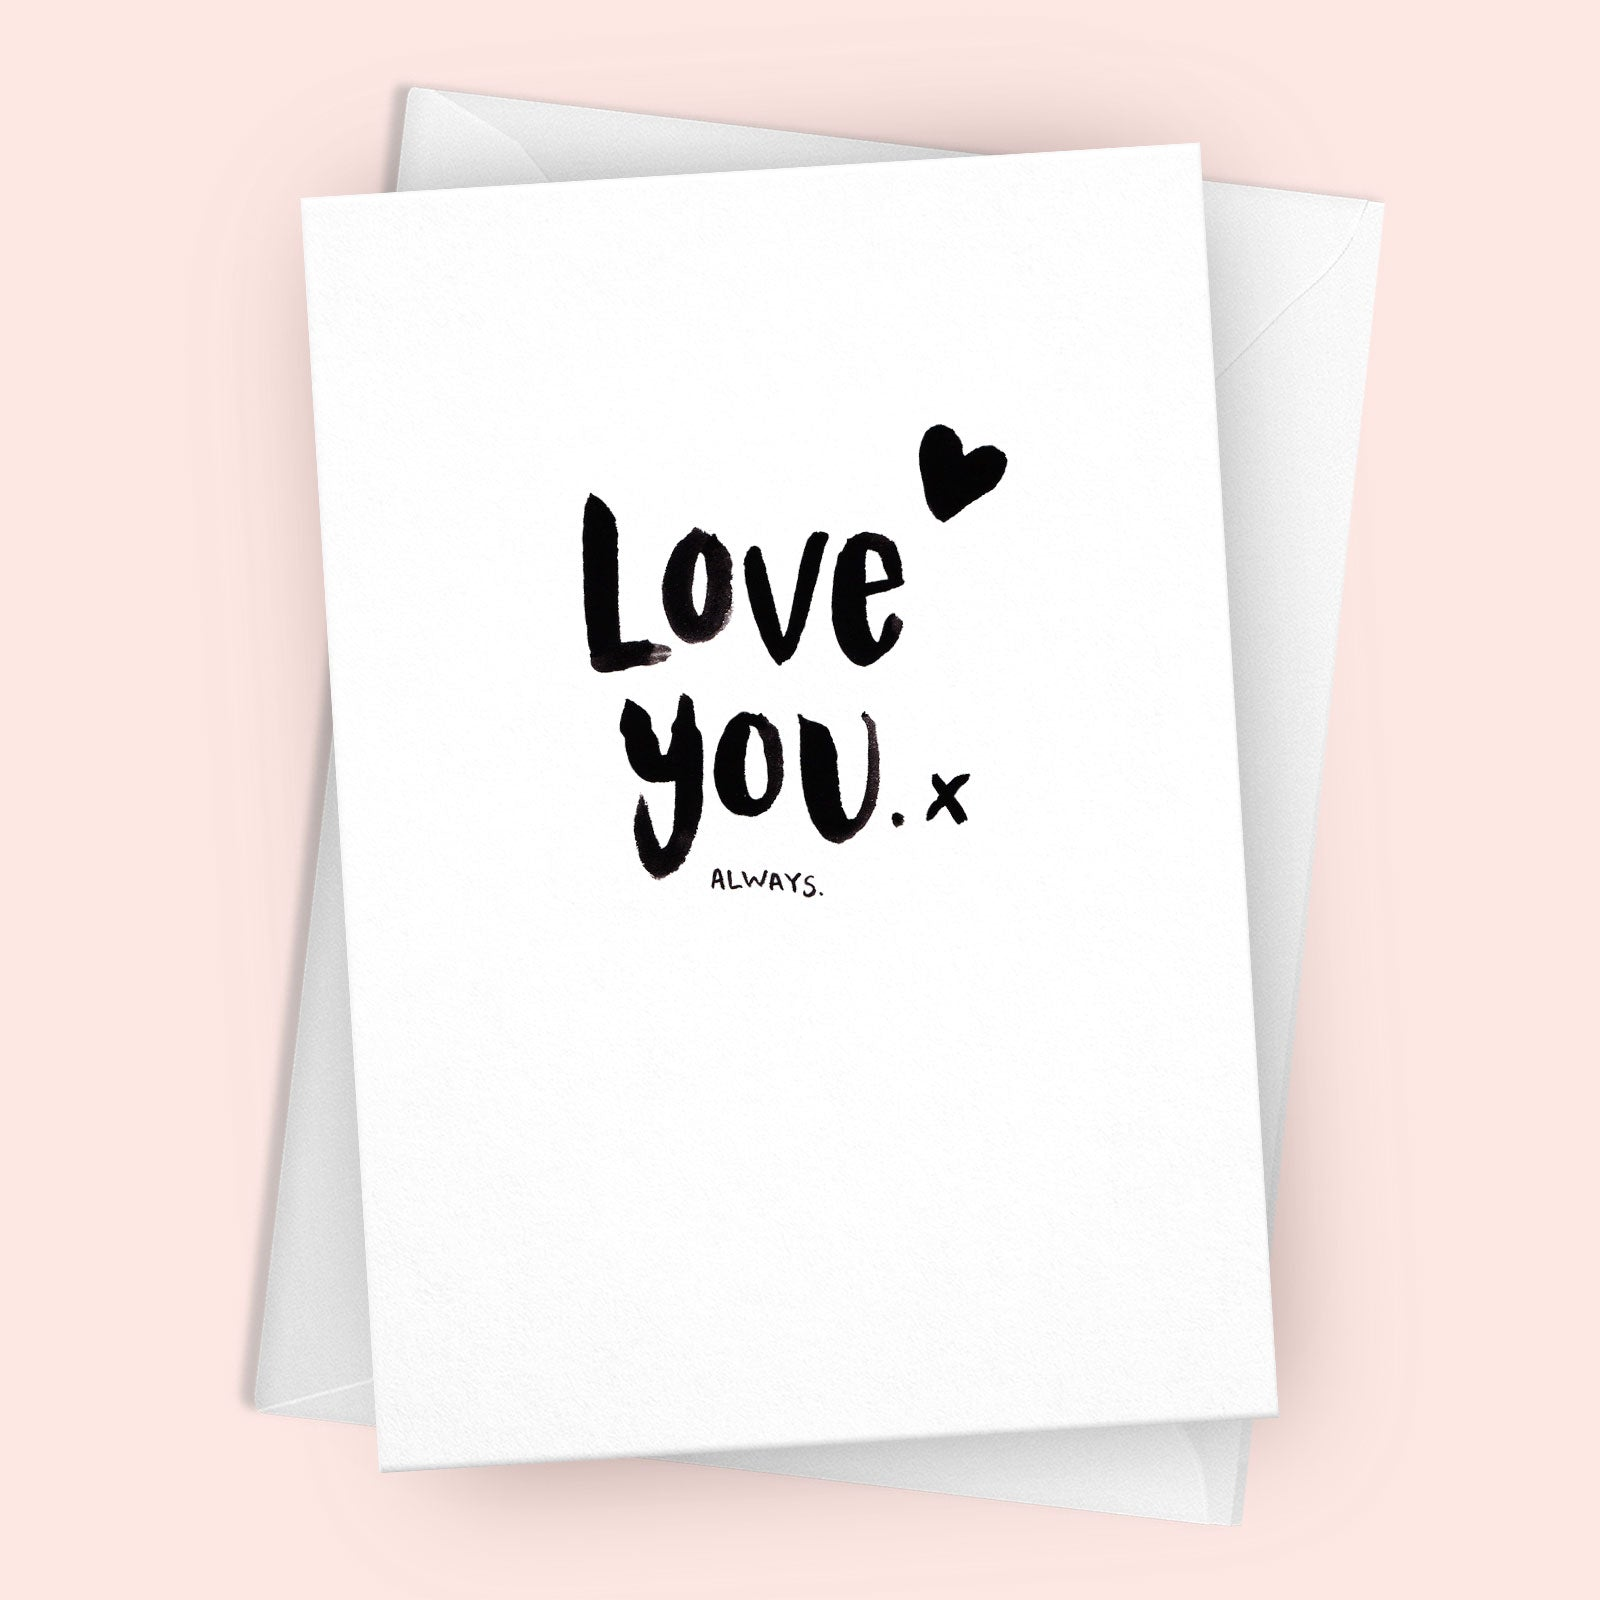 'Love You (always)' Greetings Card